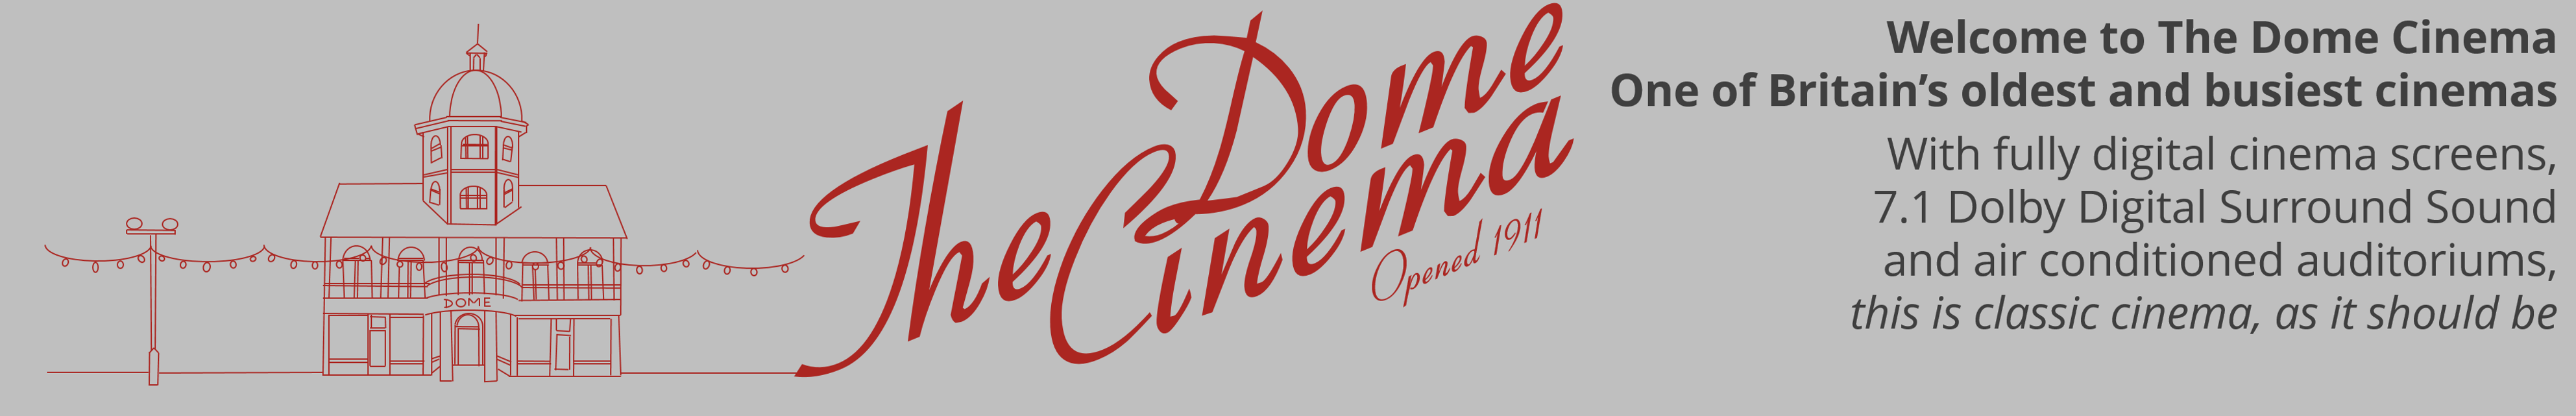 Dome Cinema - Worthing's Most Popular Cinema